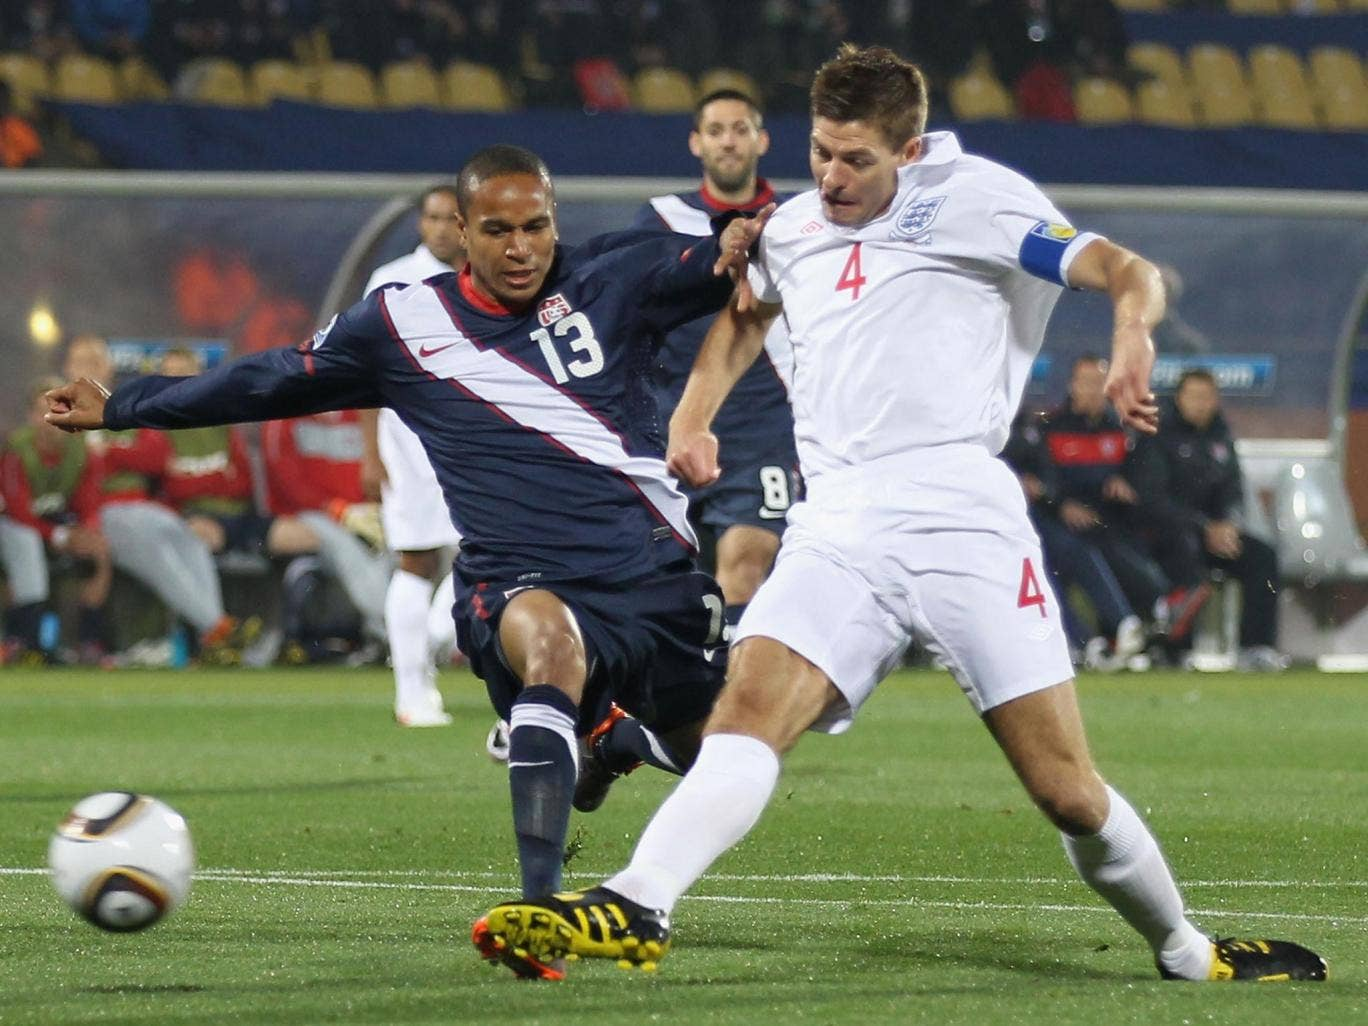 Steven Gerrard scores for England during the 1-1 draw with the United States in their opening game of the 2010 World Cup in South Africa